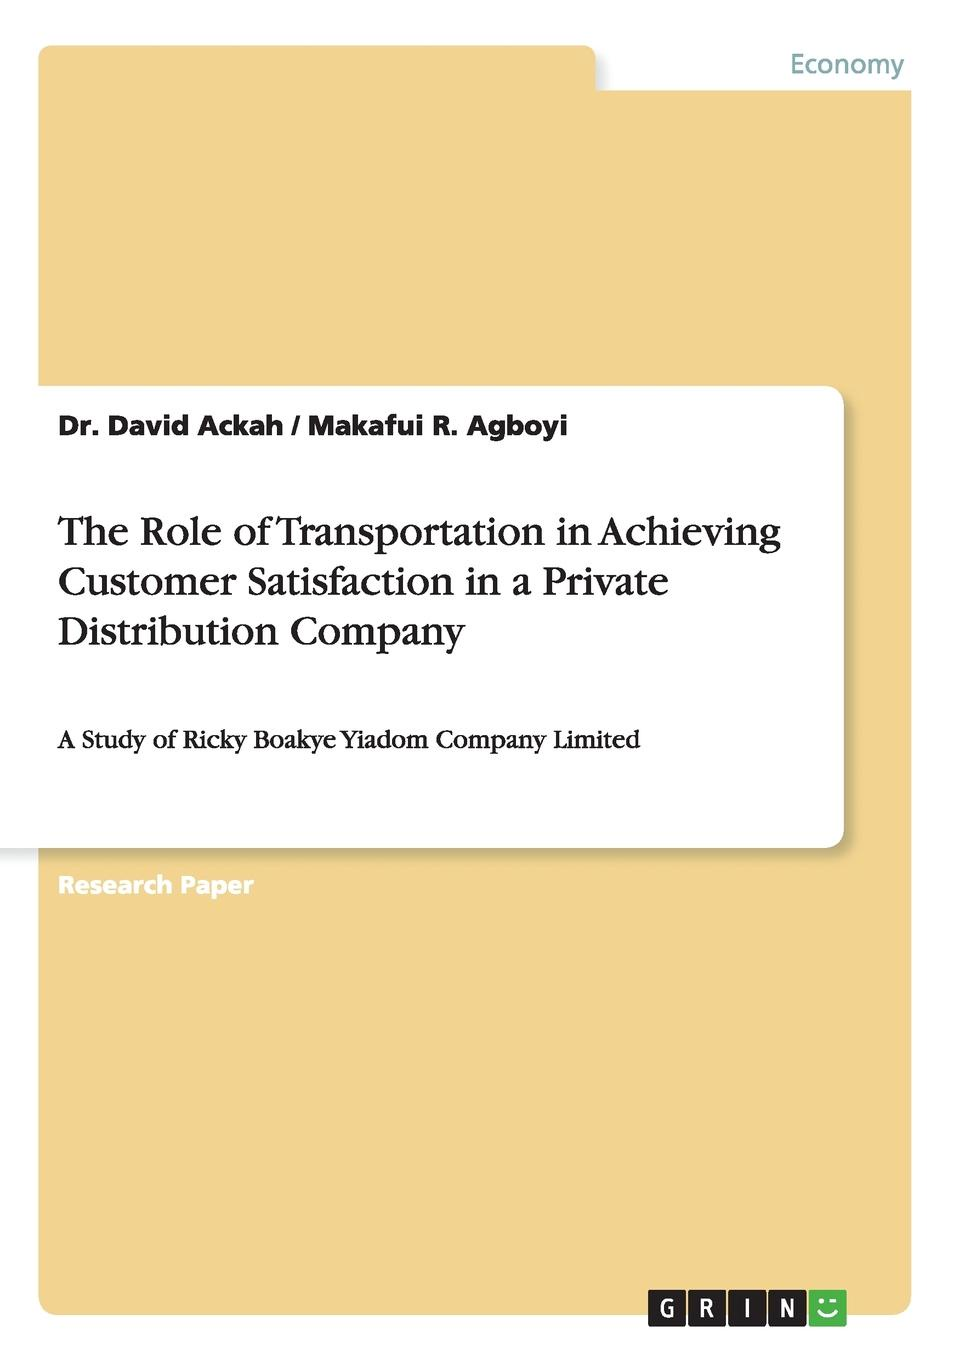 Dr. David Ackah, Makafui R. Agboyi The Role of Transportation in Achieving Customer Satisfaction in a Private Distribution Company andrew frawley igniting customer connections fire up your company s growth by multiplying customer experience and engagement